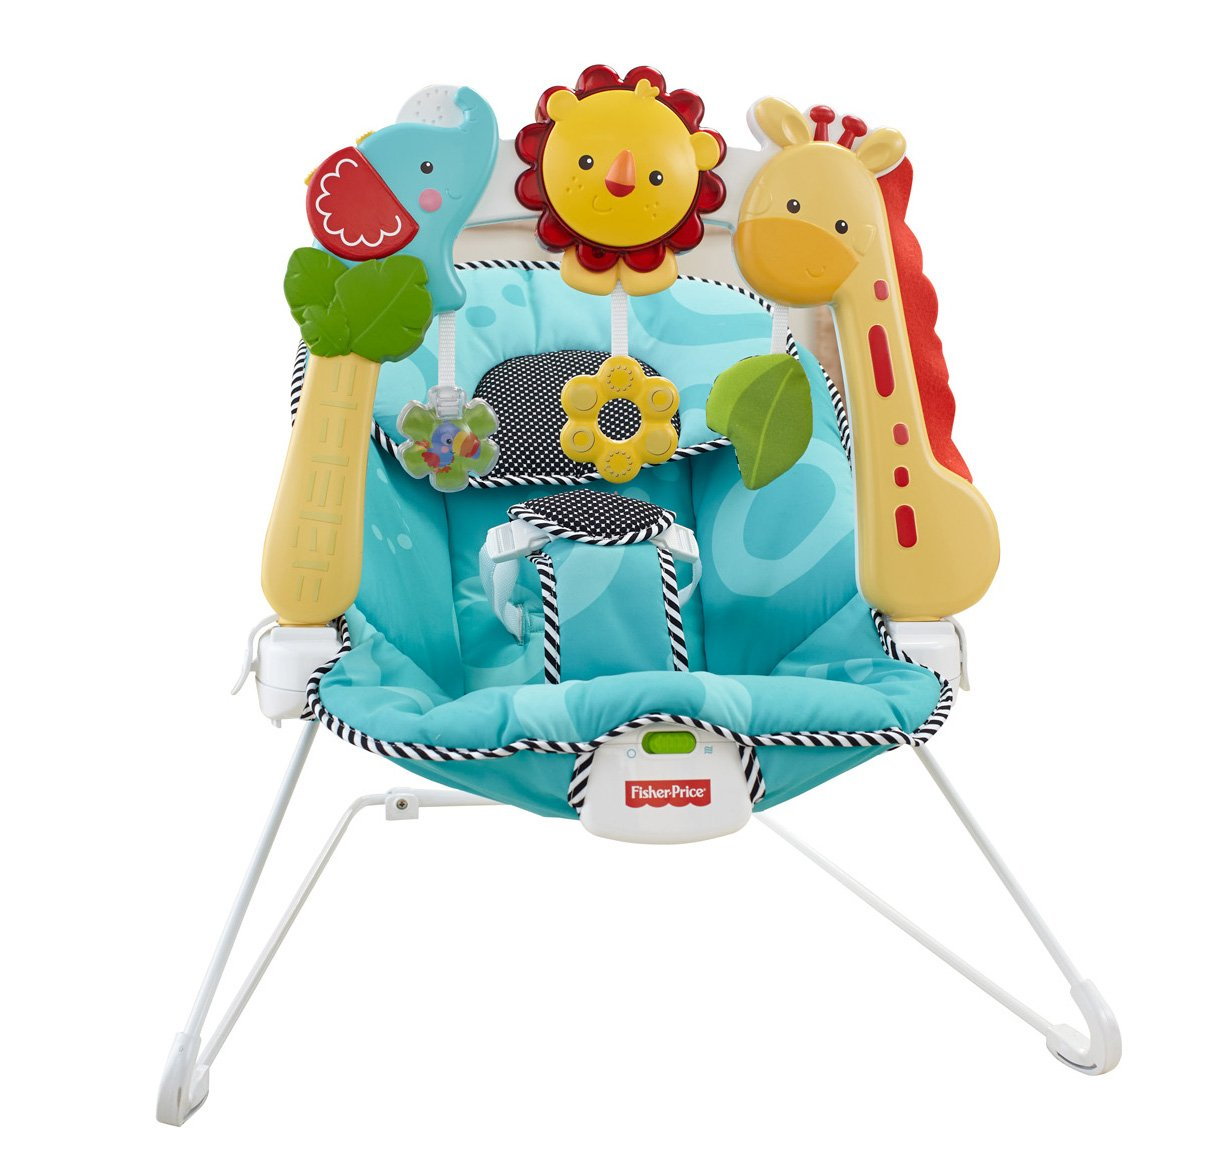 Fisher-Price Bouncer: 2-in-1 Sensory Stages